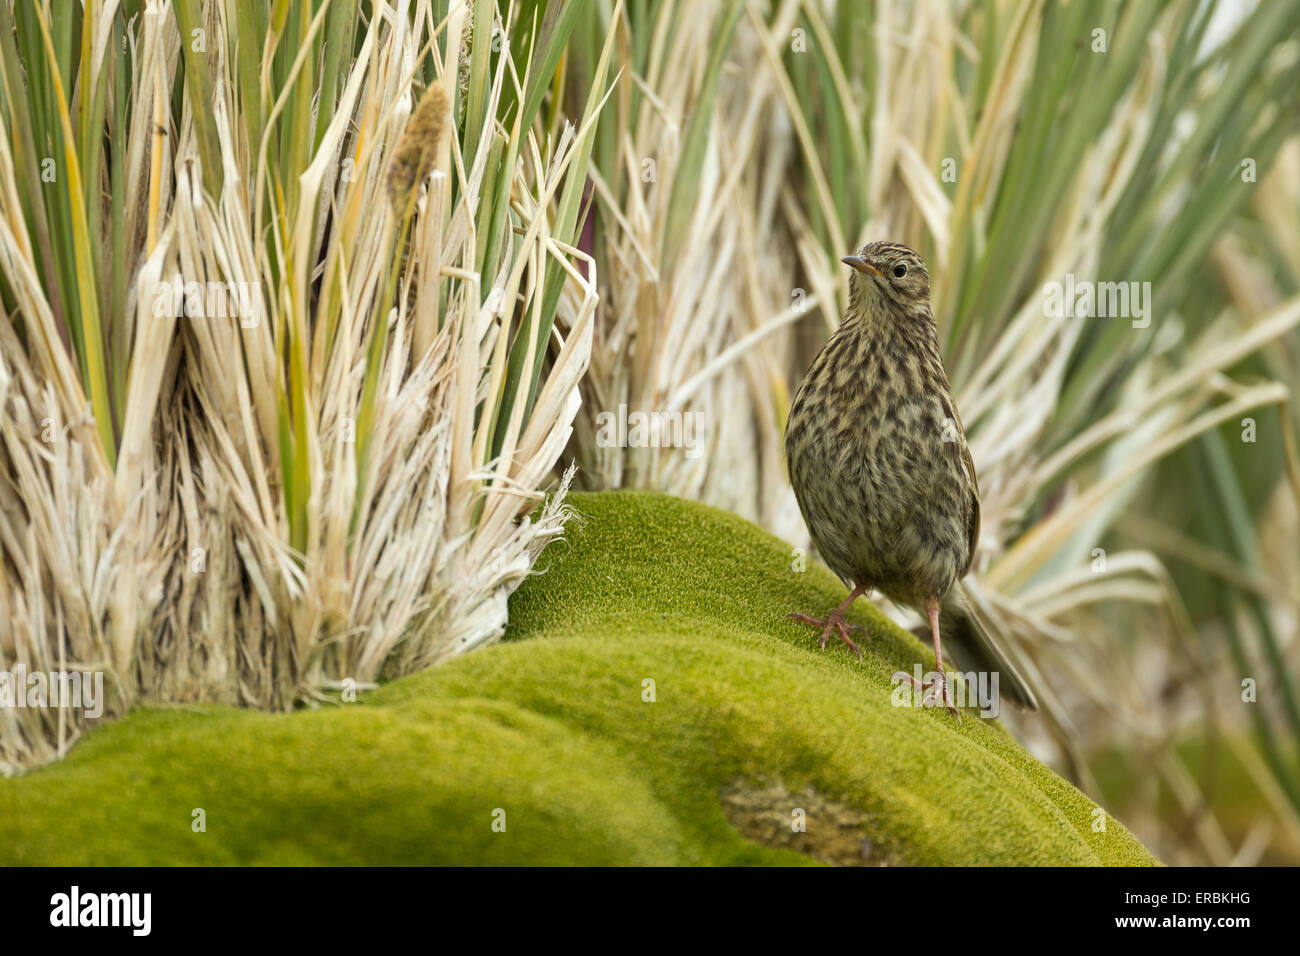 South georgia pipit Anthus antarcticus, foraging along rocky shoreline, Cooper Bay, South Georgia in January. - Stock Image